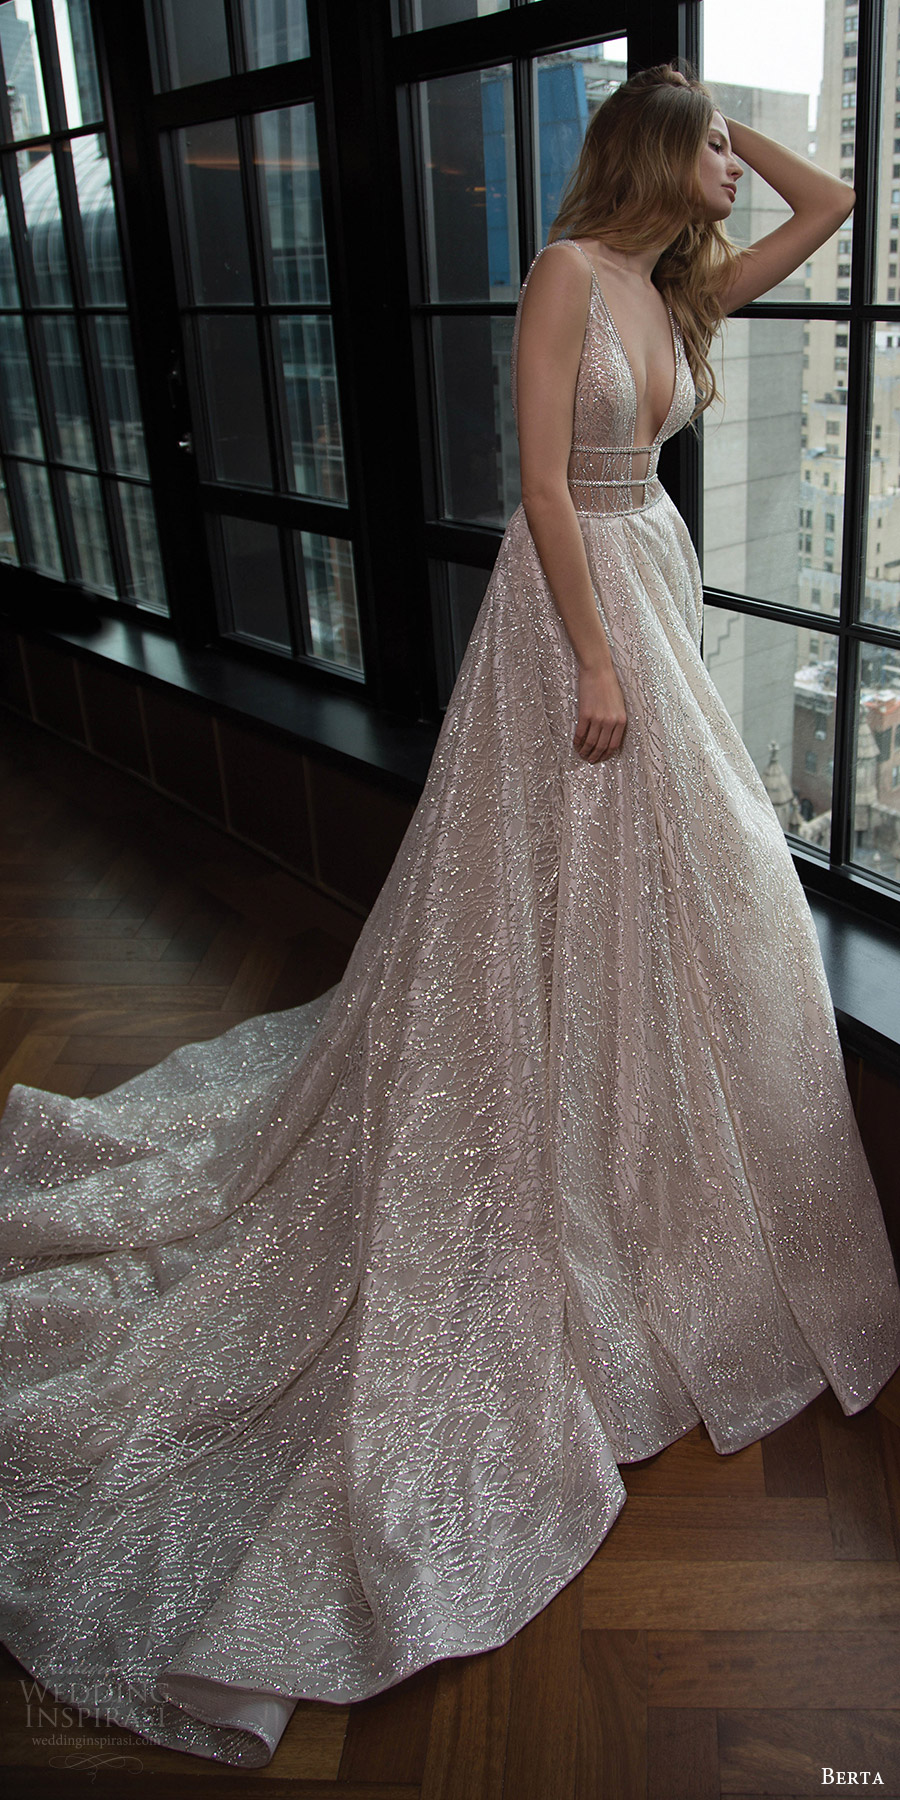 Berta bridal fall 2016 wedding dresses campaign lookbook for Where to buy berta wedding dresses